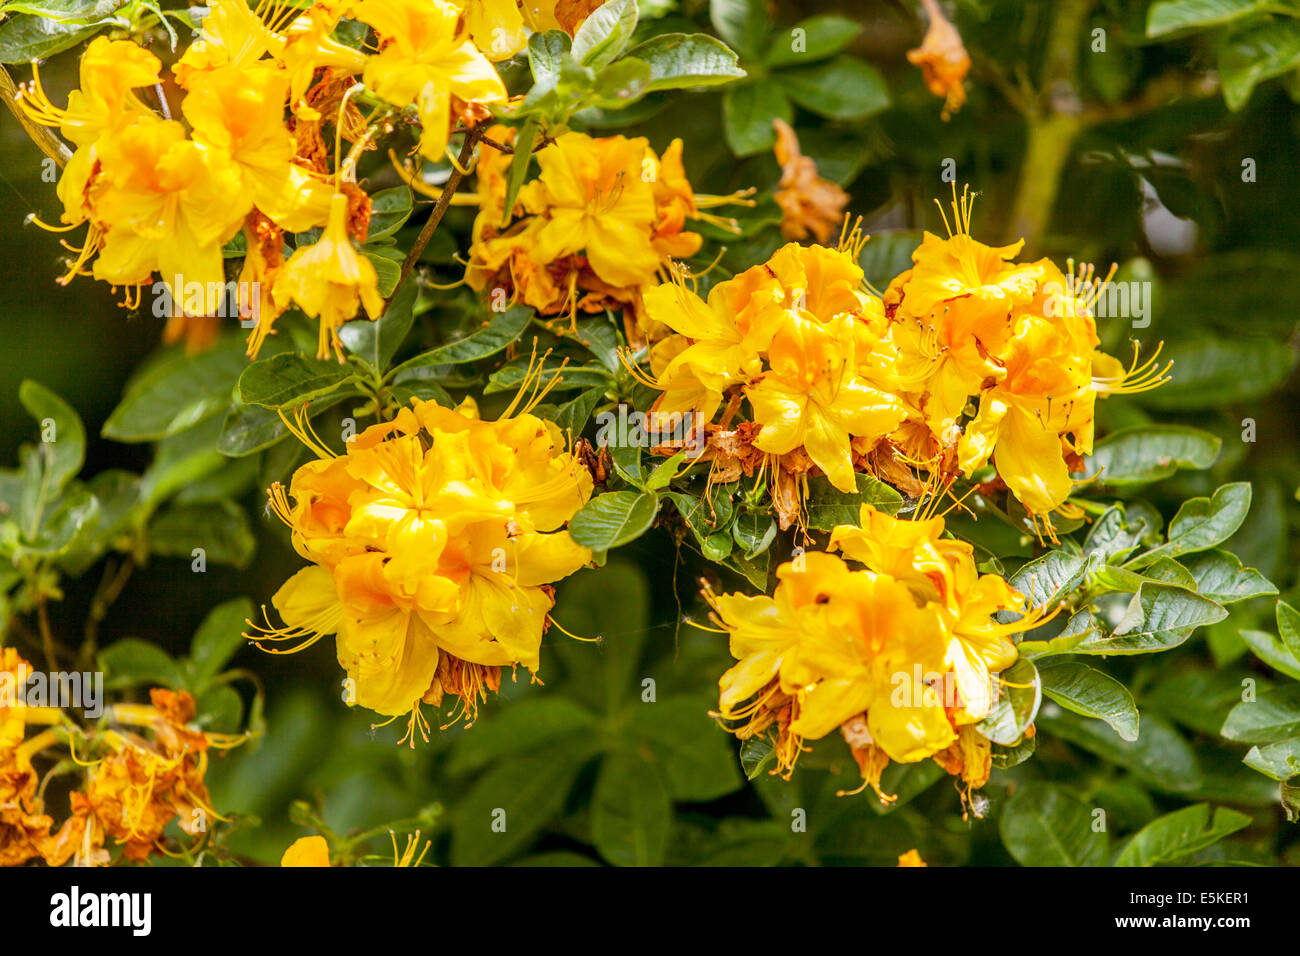 the yellow flowers of rhododendron Rhododendron luteum - Stock Image